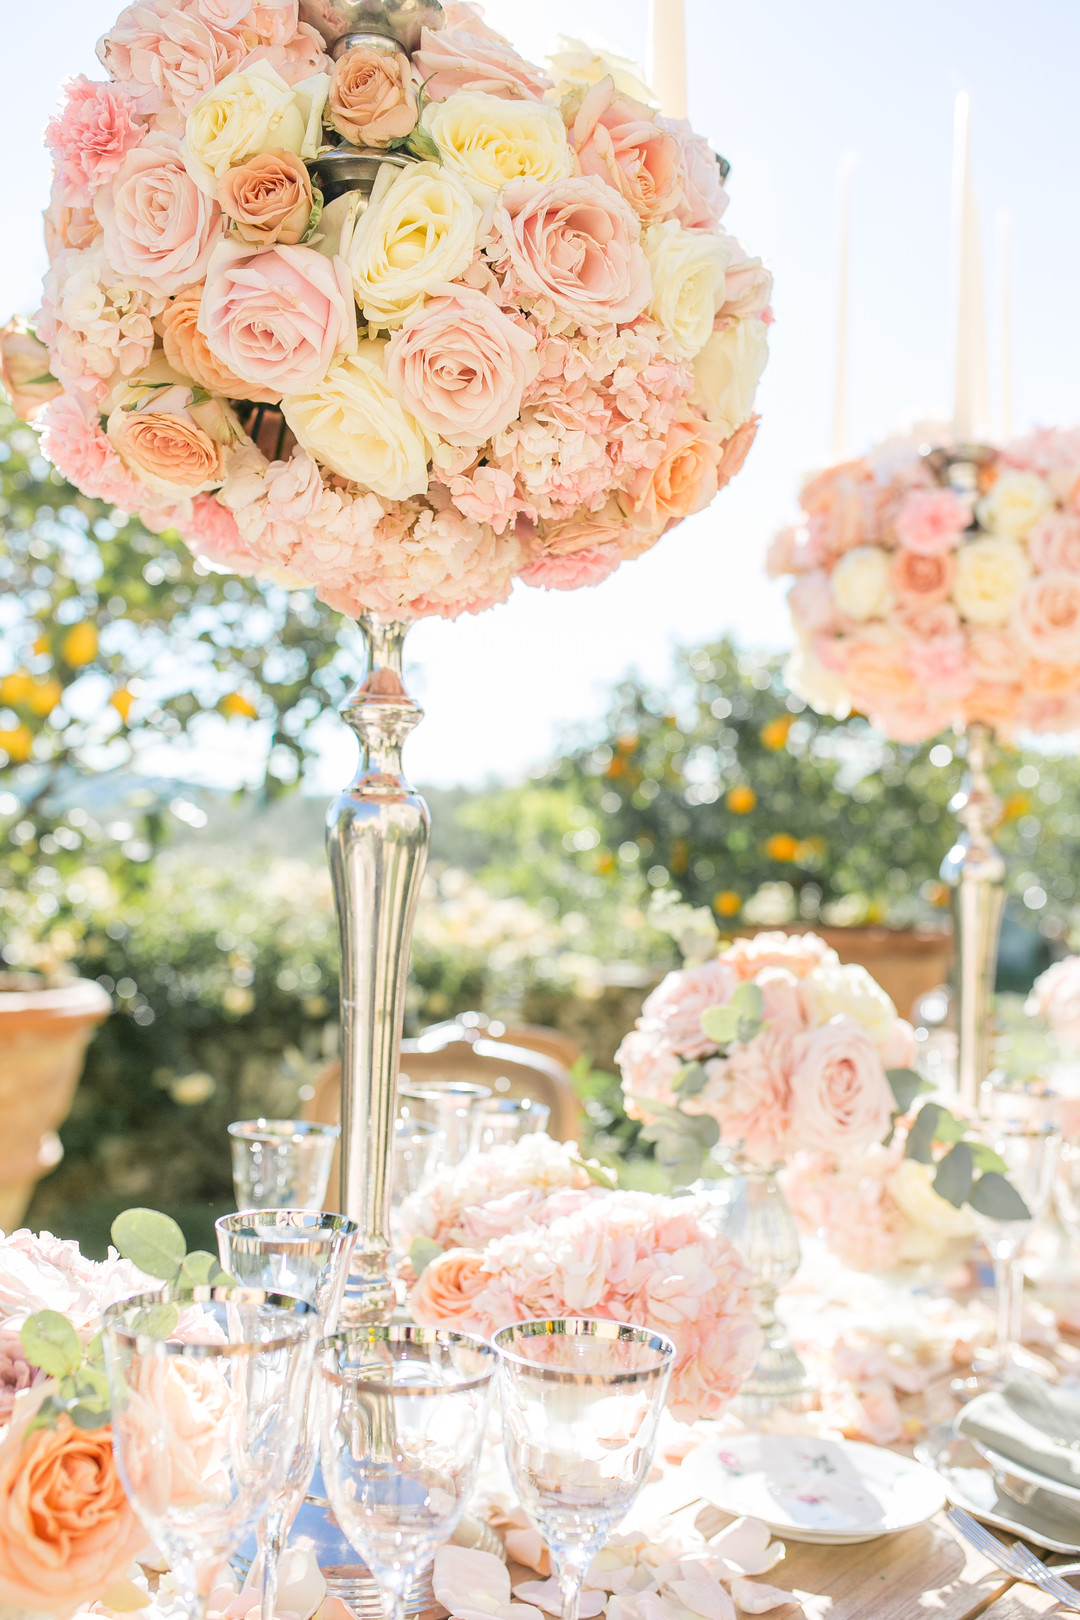 pink, blush, peach and light yellow rose centerpieces on a silver candelabra